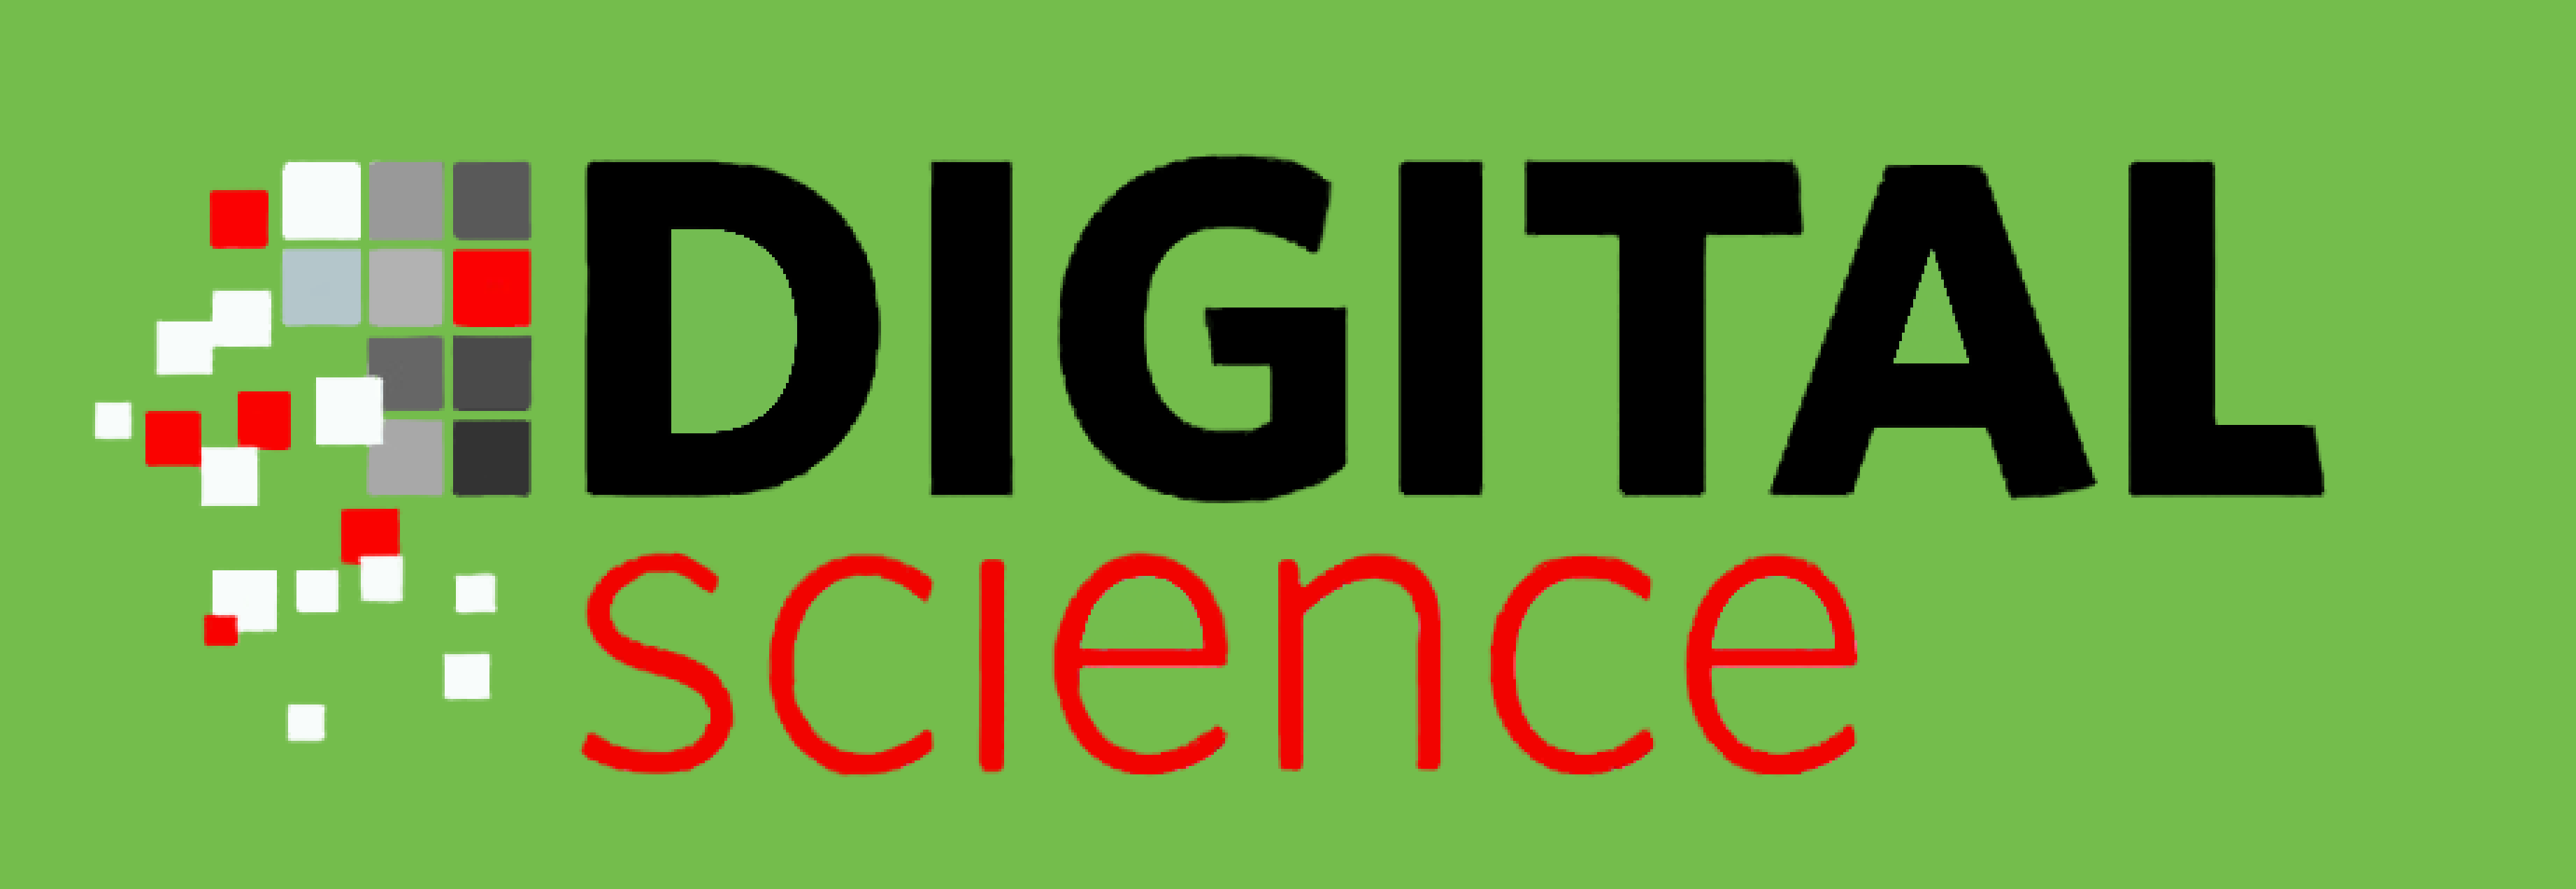 Digital Science's logo on a light green background